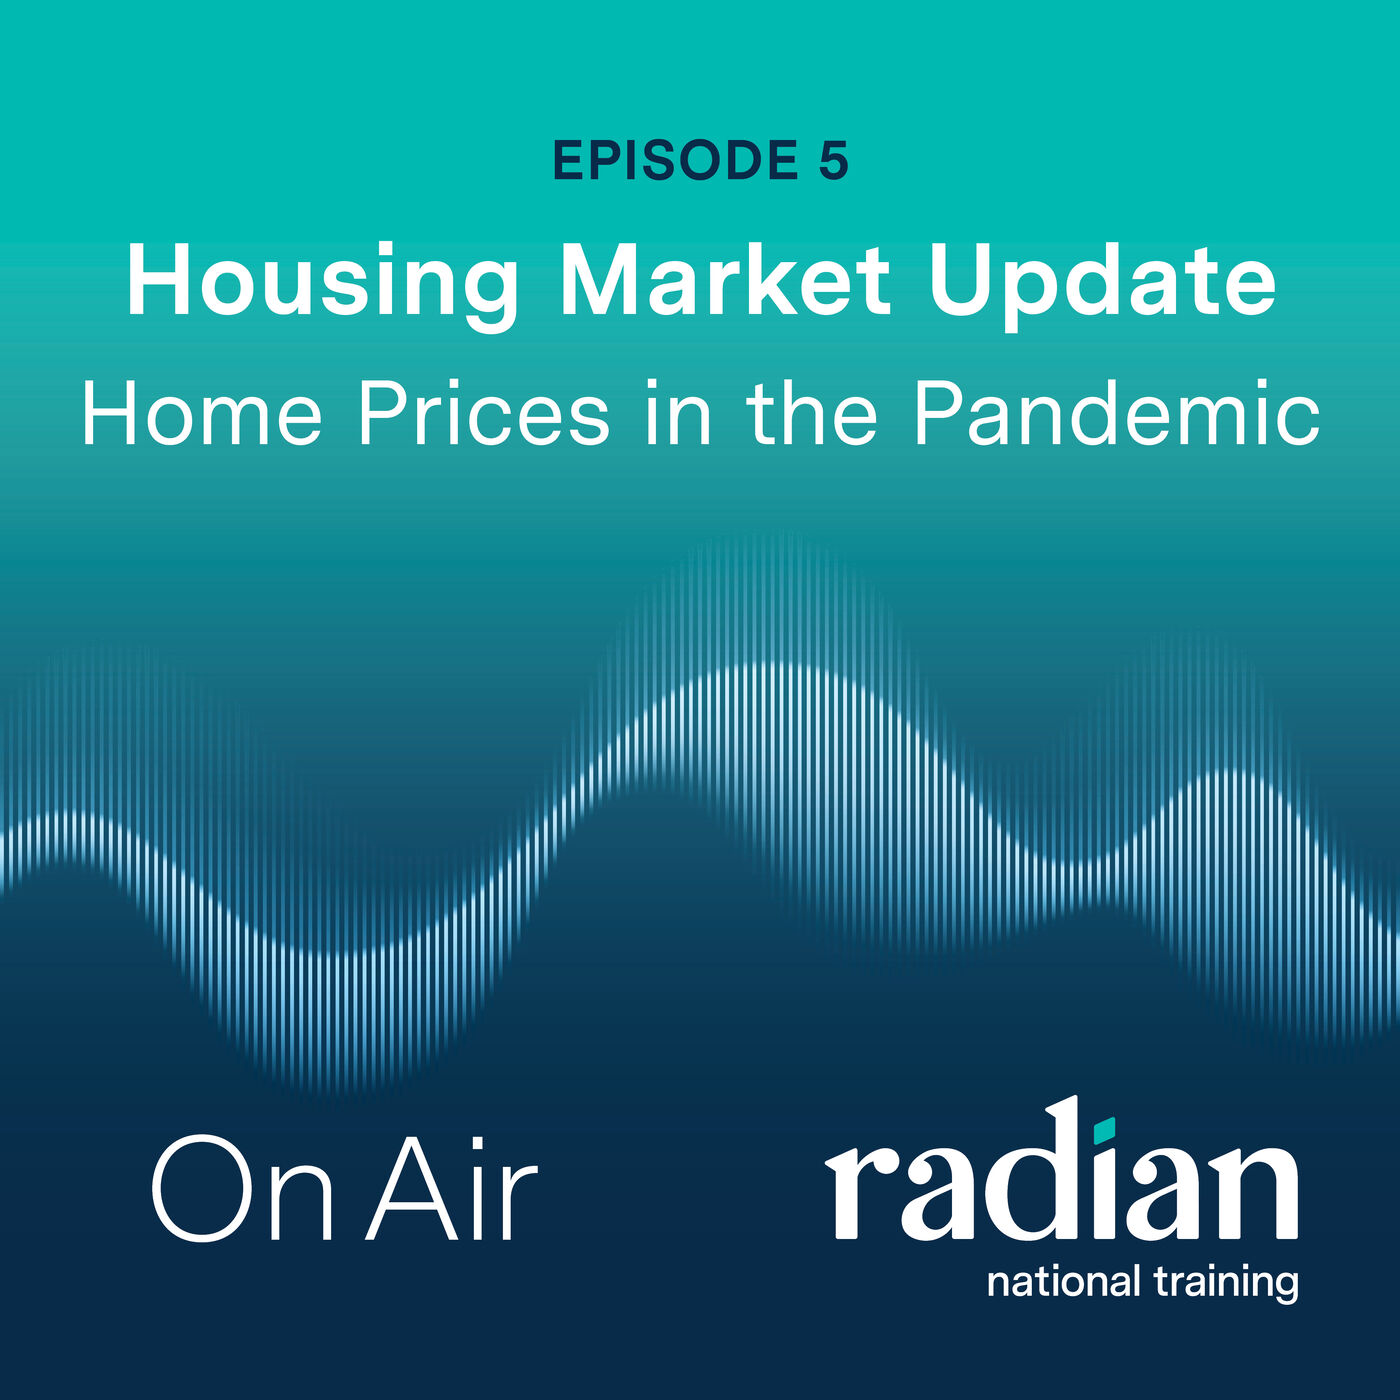 Housing Market Update: Home Prices in the Pandemic